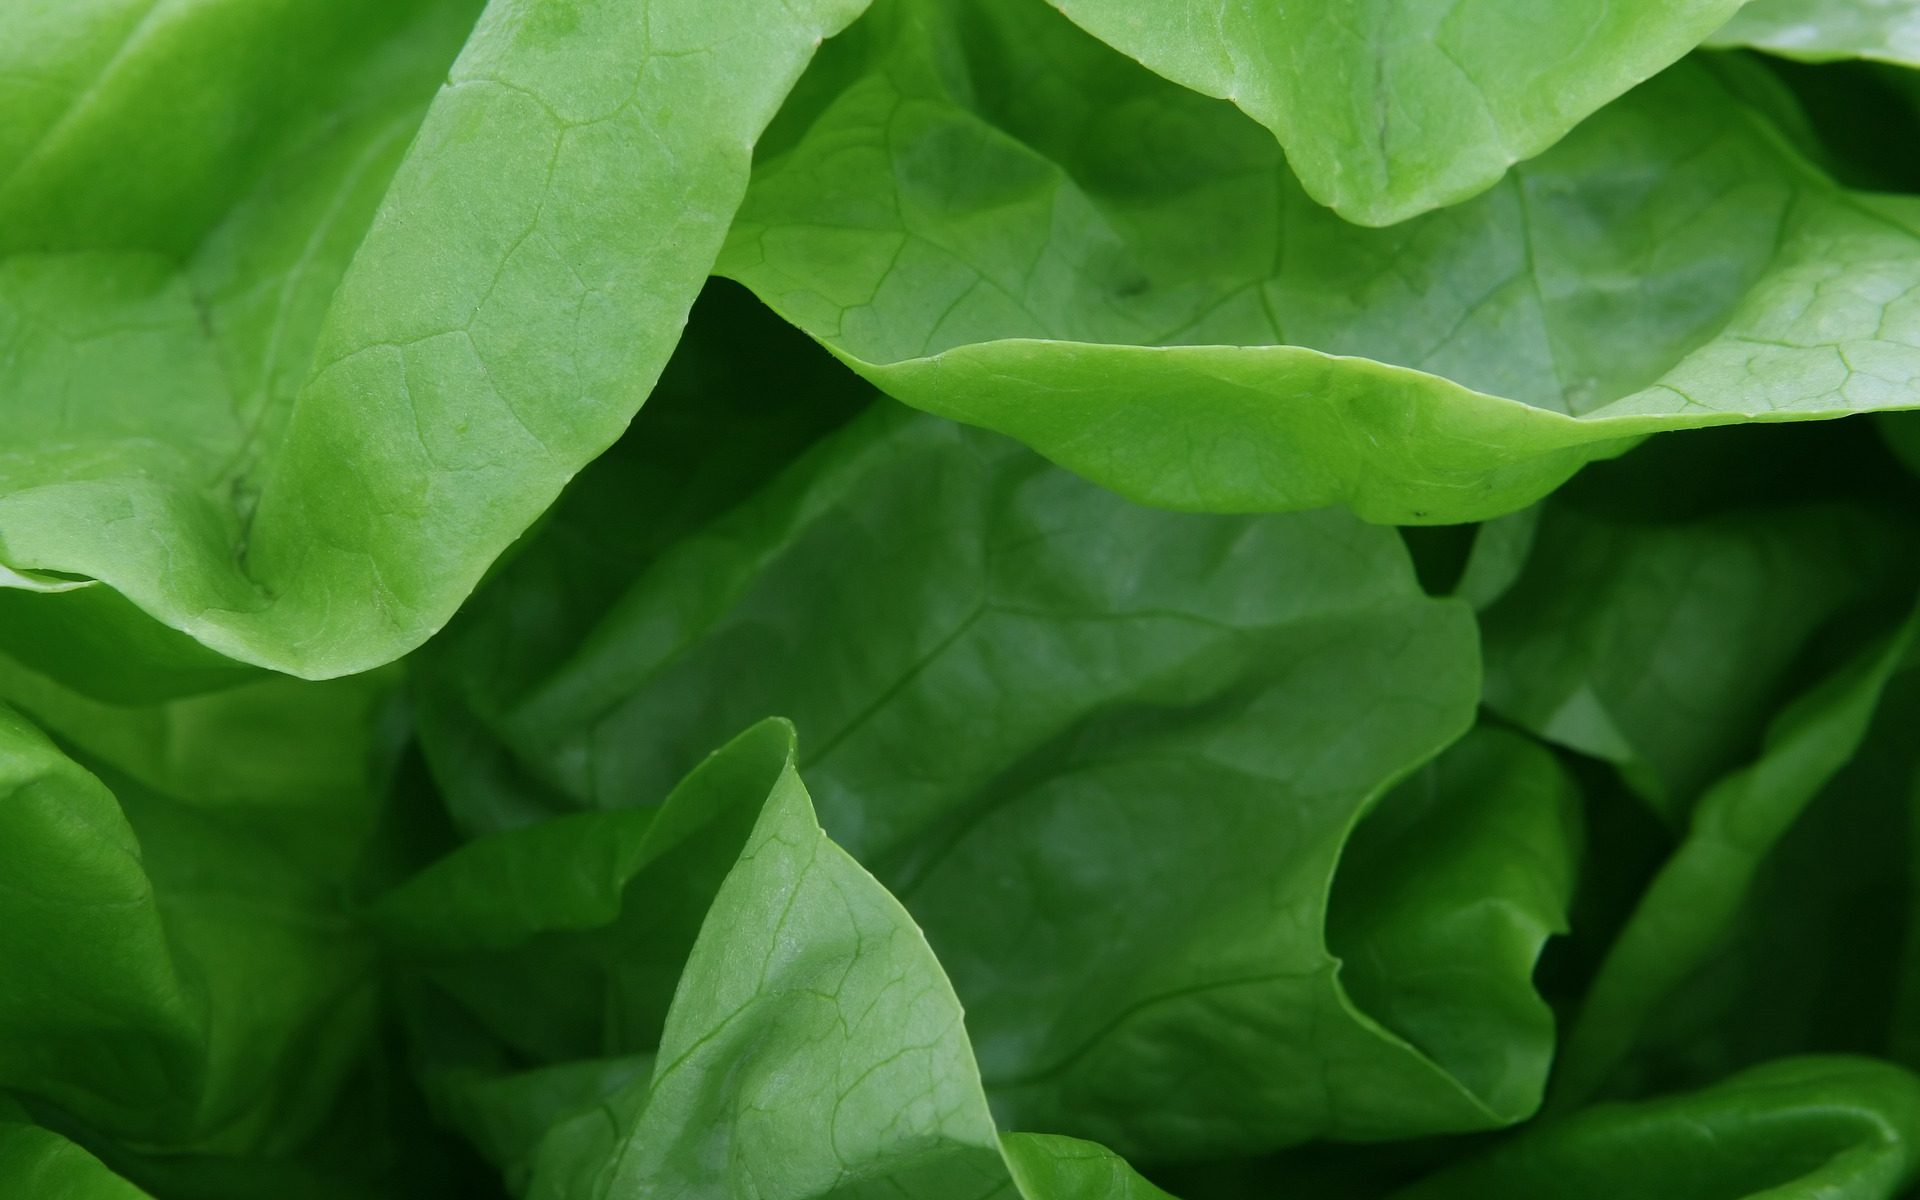 Close up of lettuce leaves from my raw food diet and weight loss month